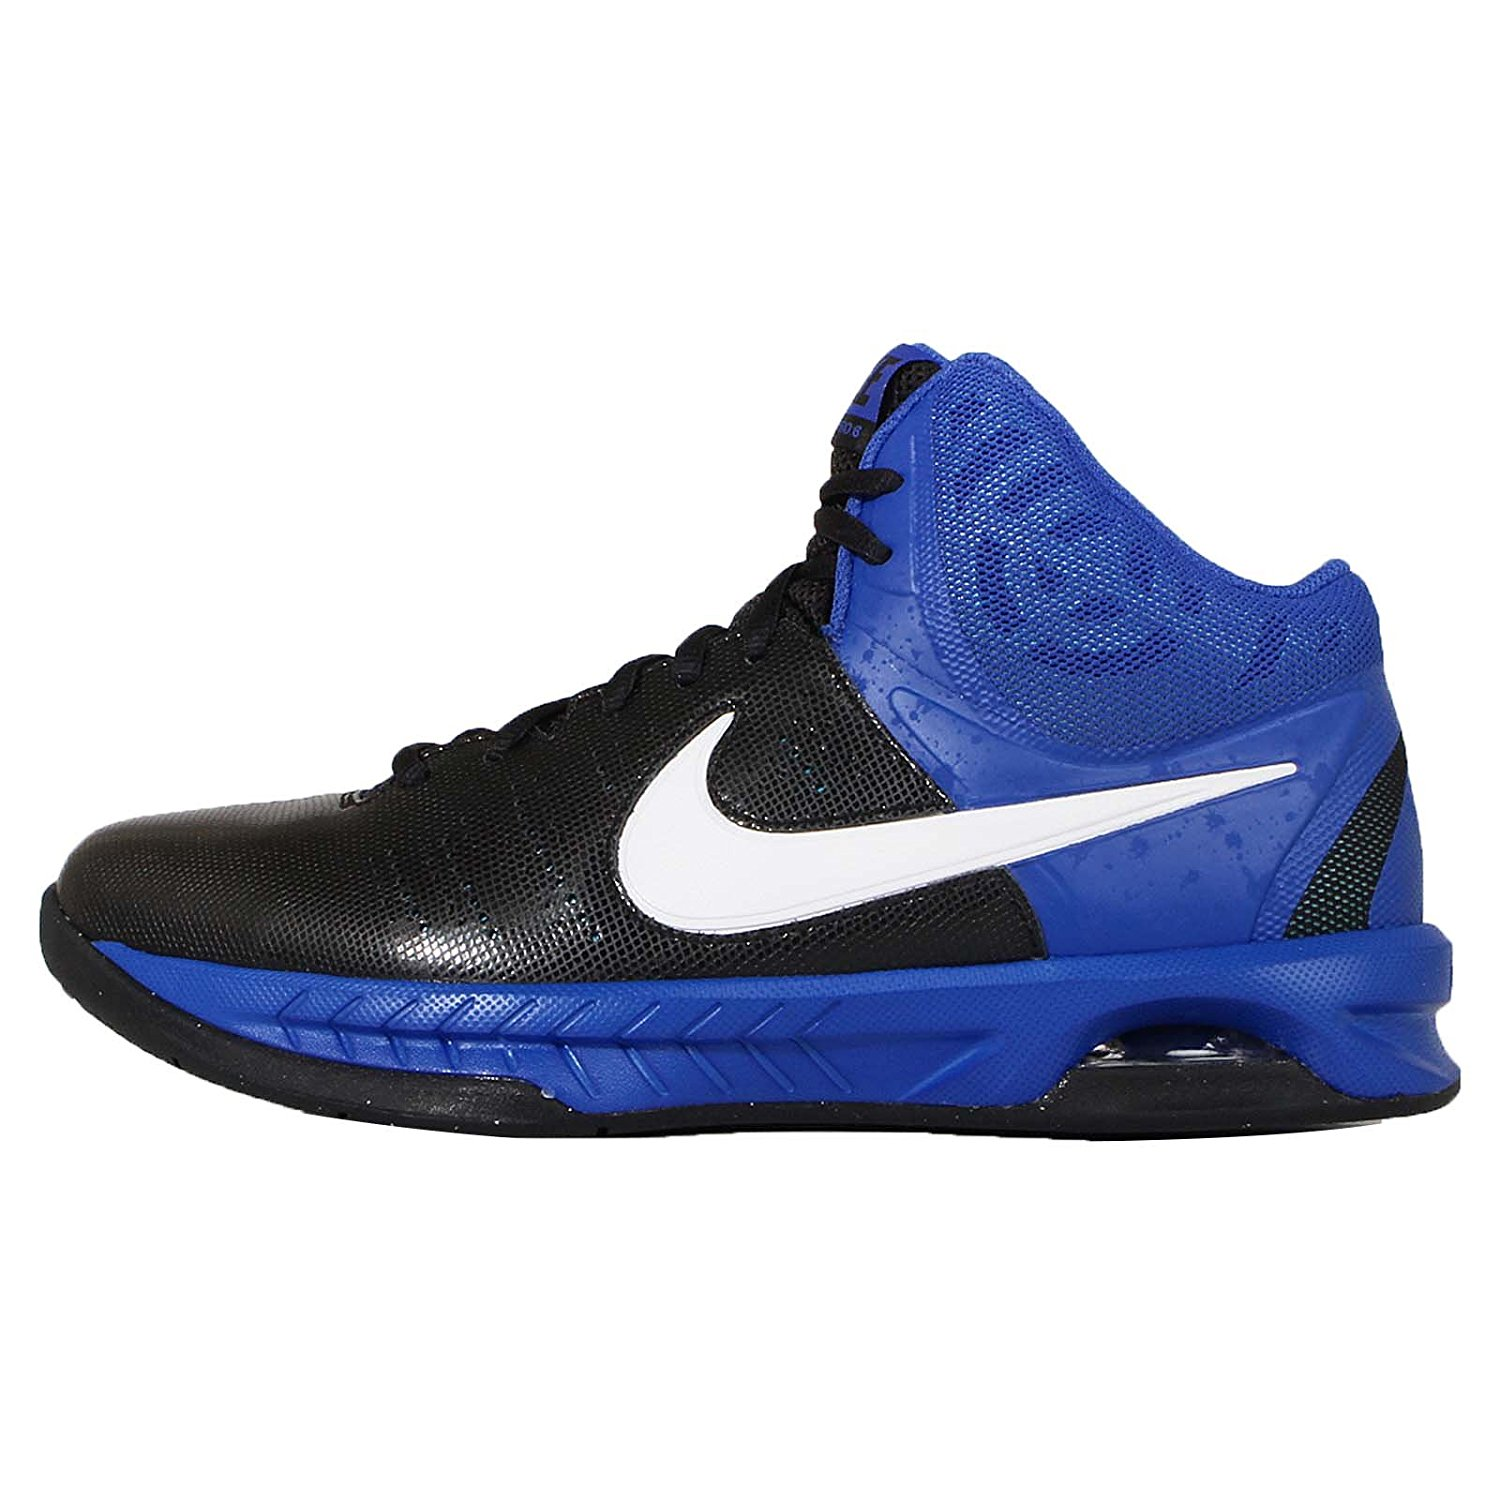 61abb58f0cb8 ... Basketball Shoes For Men  Get Quotations · Nike Men s Air Visi Pro VI